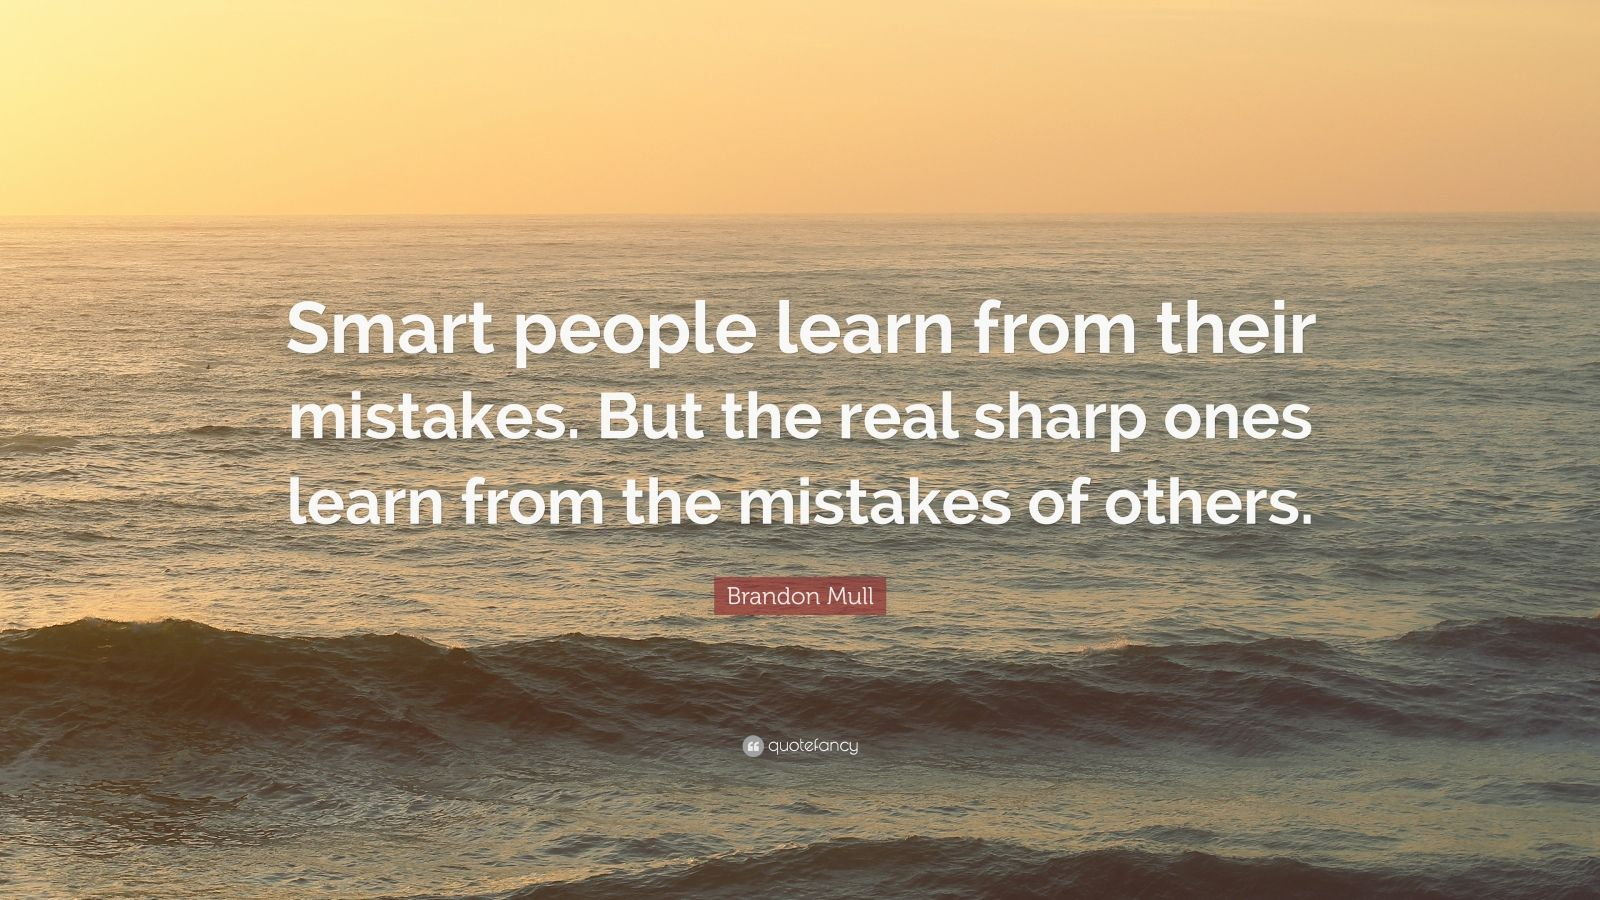 do people learn from their mistakes